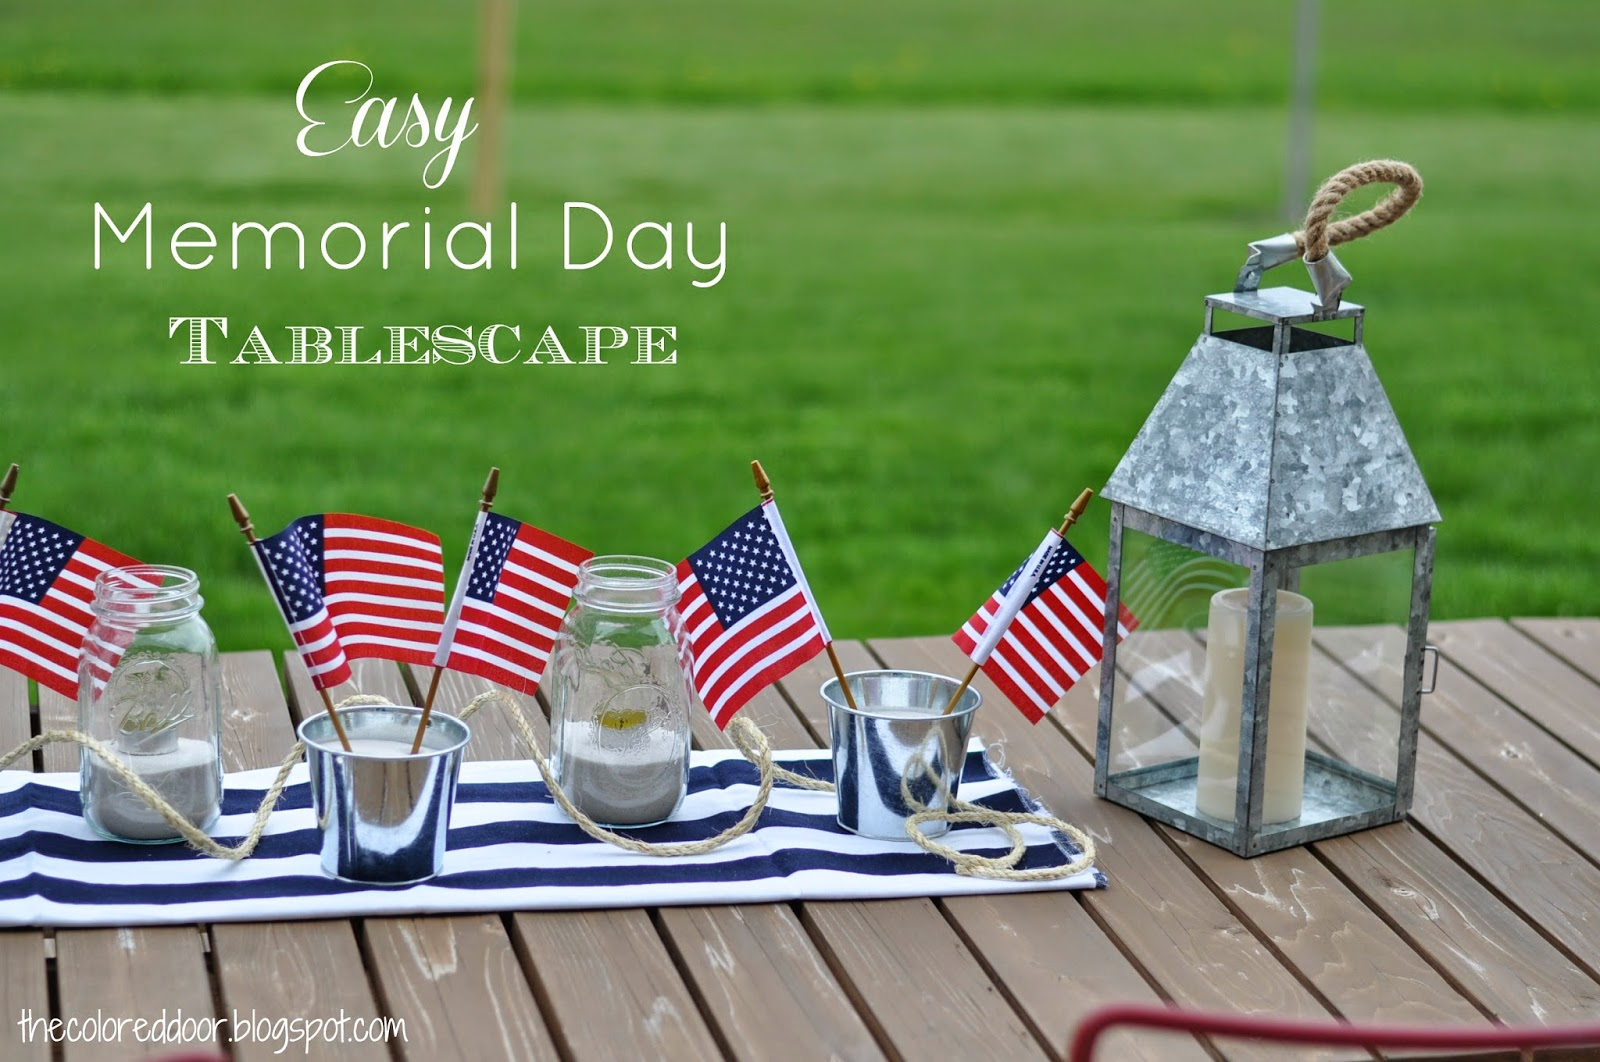 Easy Memorial day tablescape - the colored door